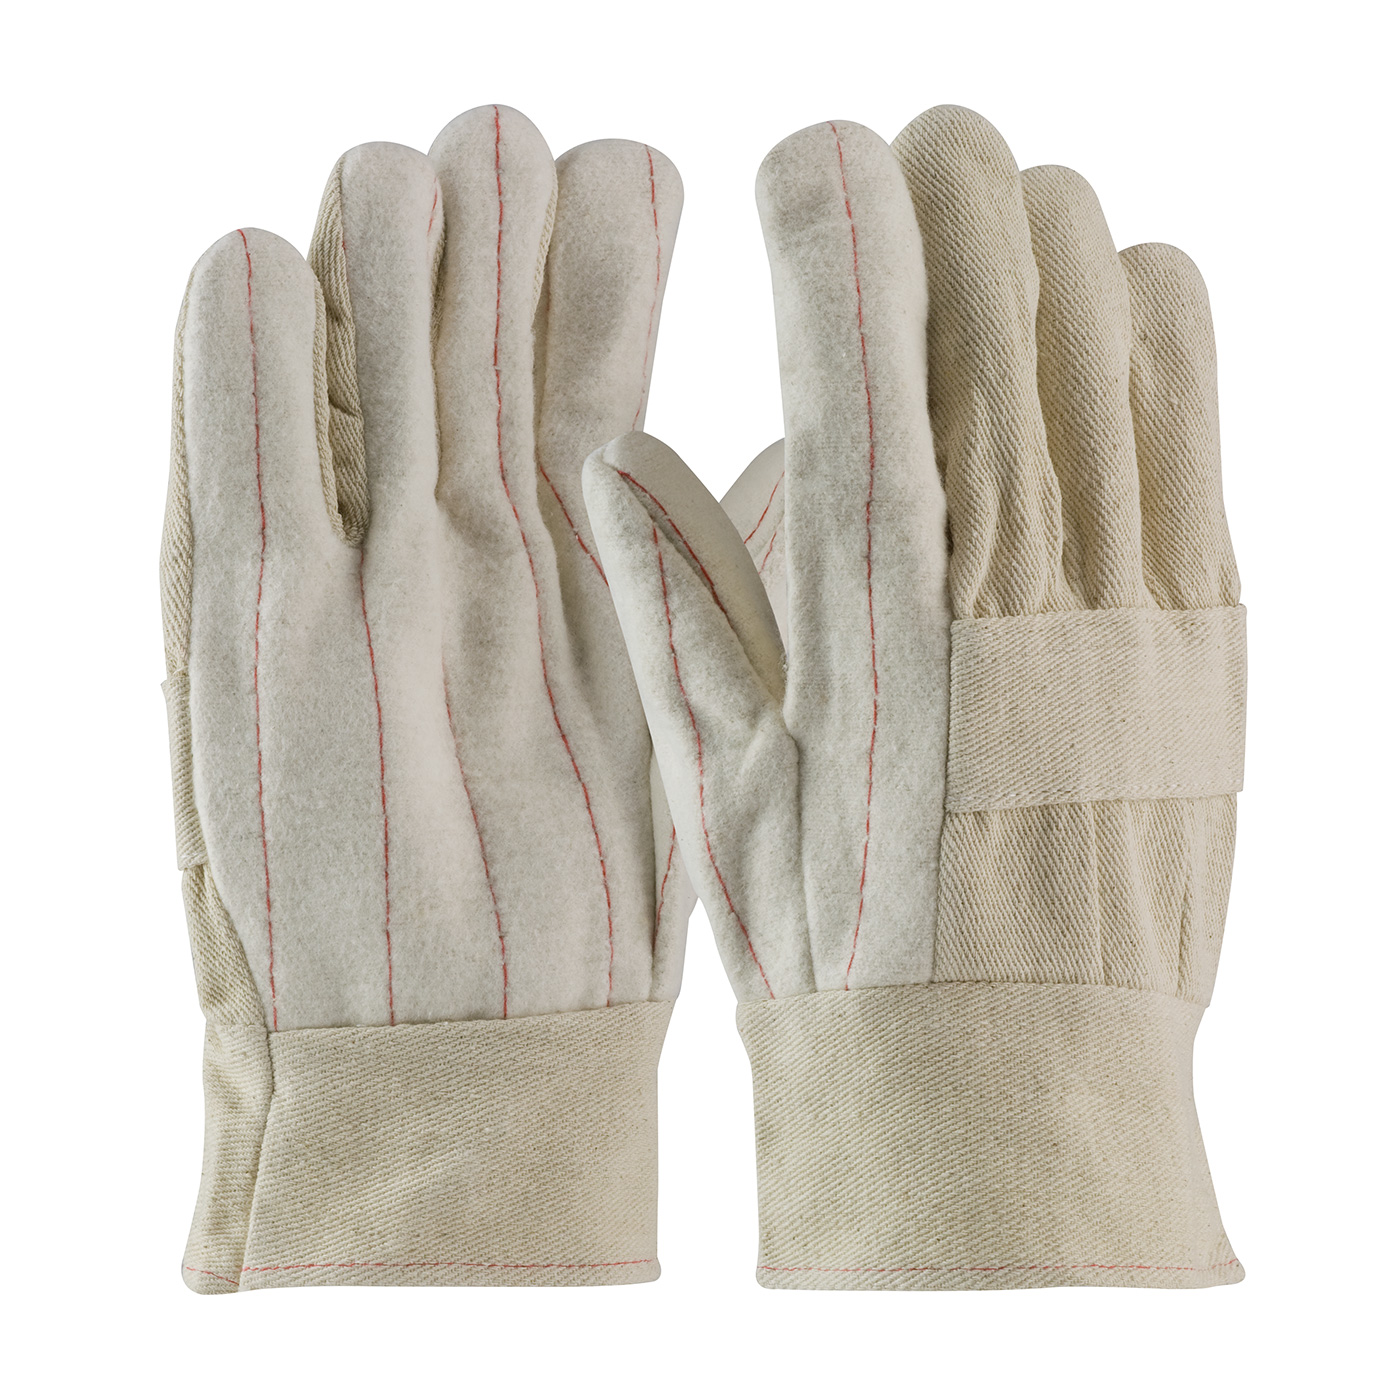 Premium Grade Hot Mill Glove with Two-Layers of Cotton Canvas - 24 oz, Natural, MENS